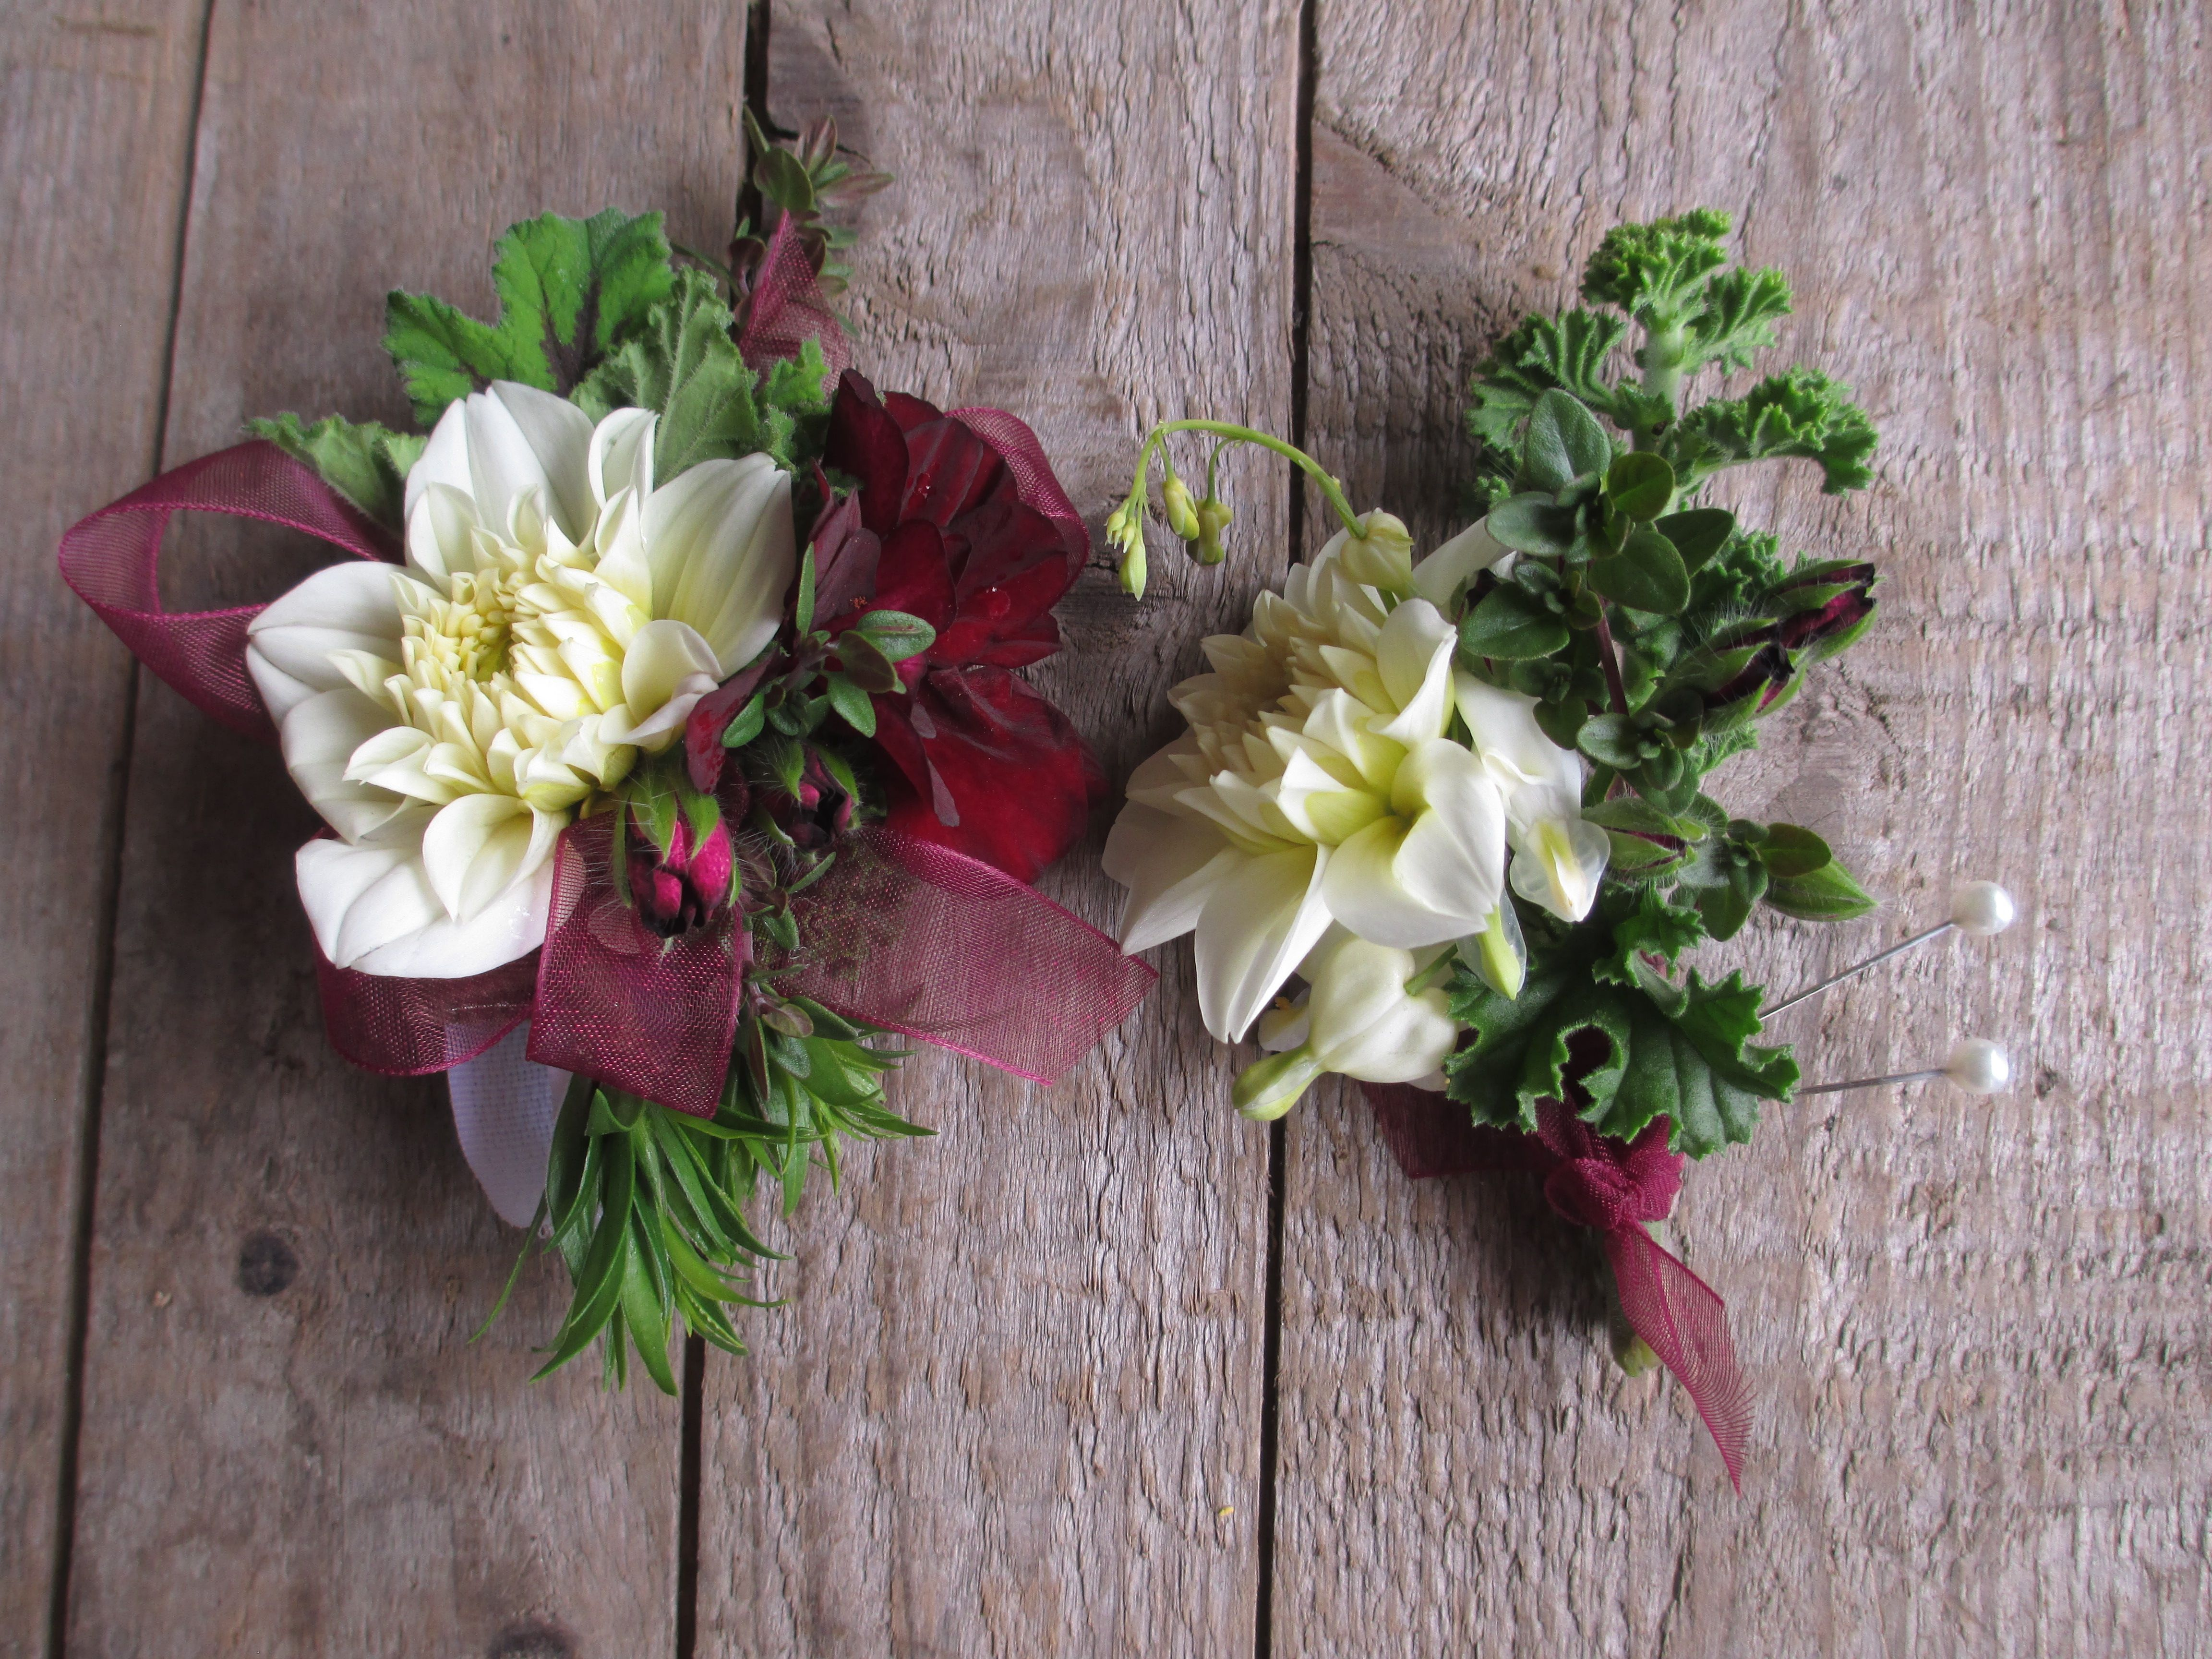 Textural Wrist Corsage And Boutonniere In Creams, Greens